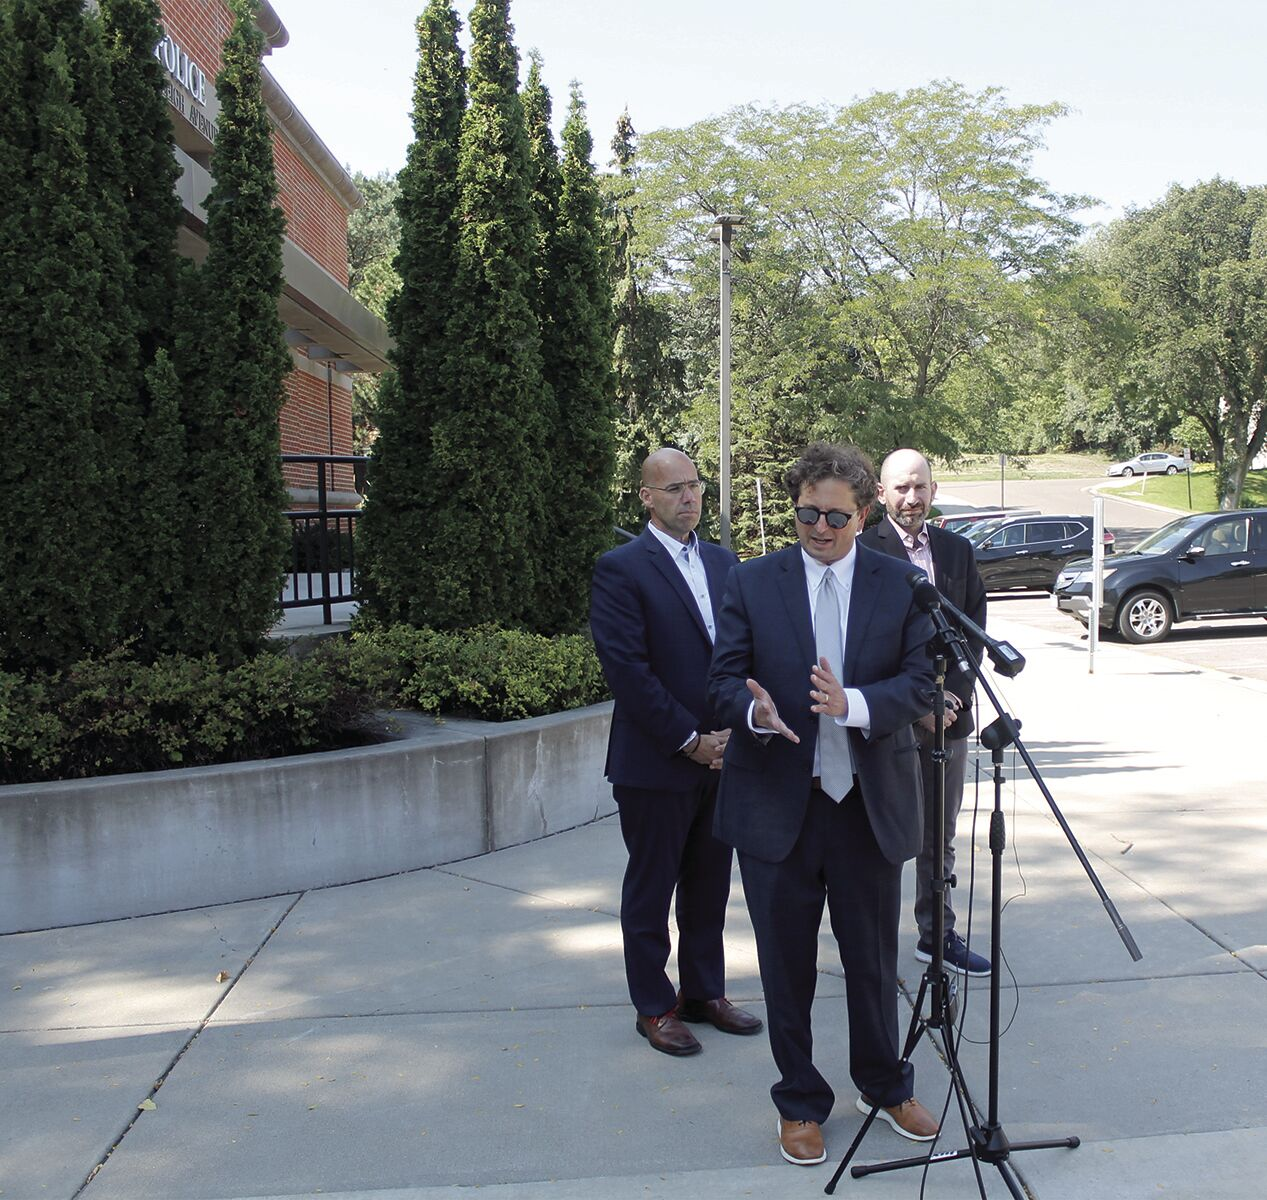 Threat of violence against St. Louis Park synagogue prompts investigation - 2